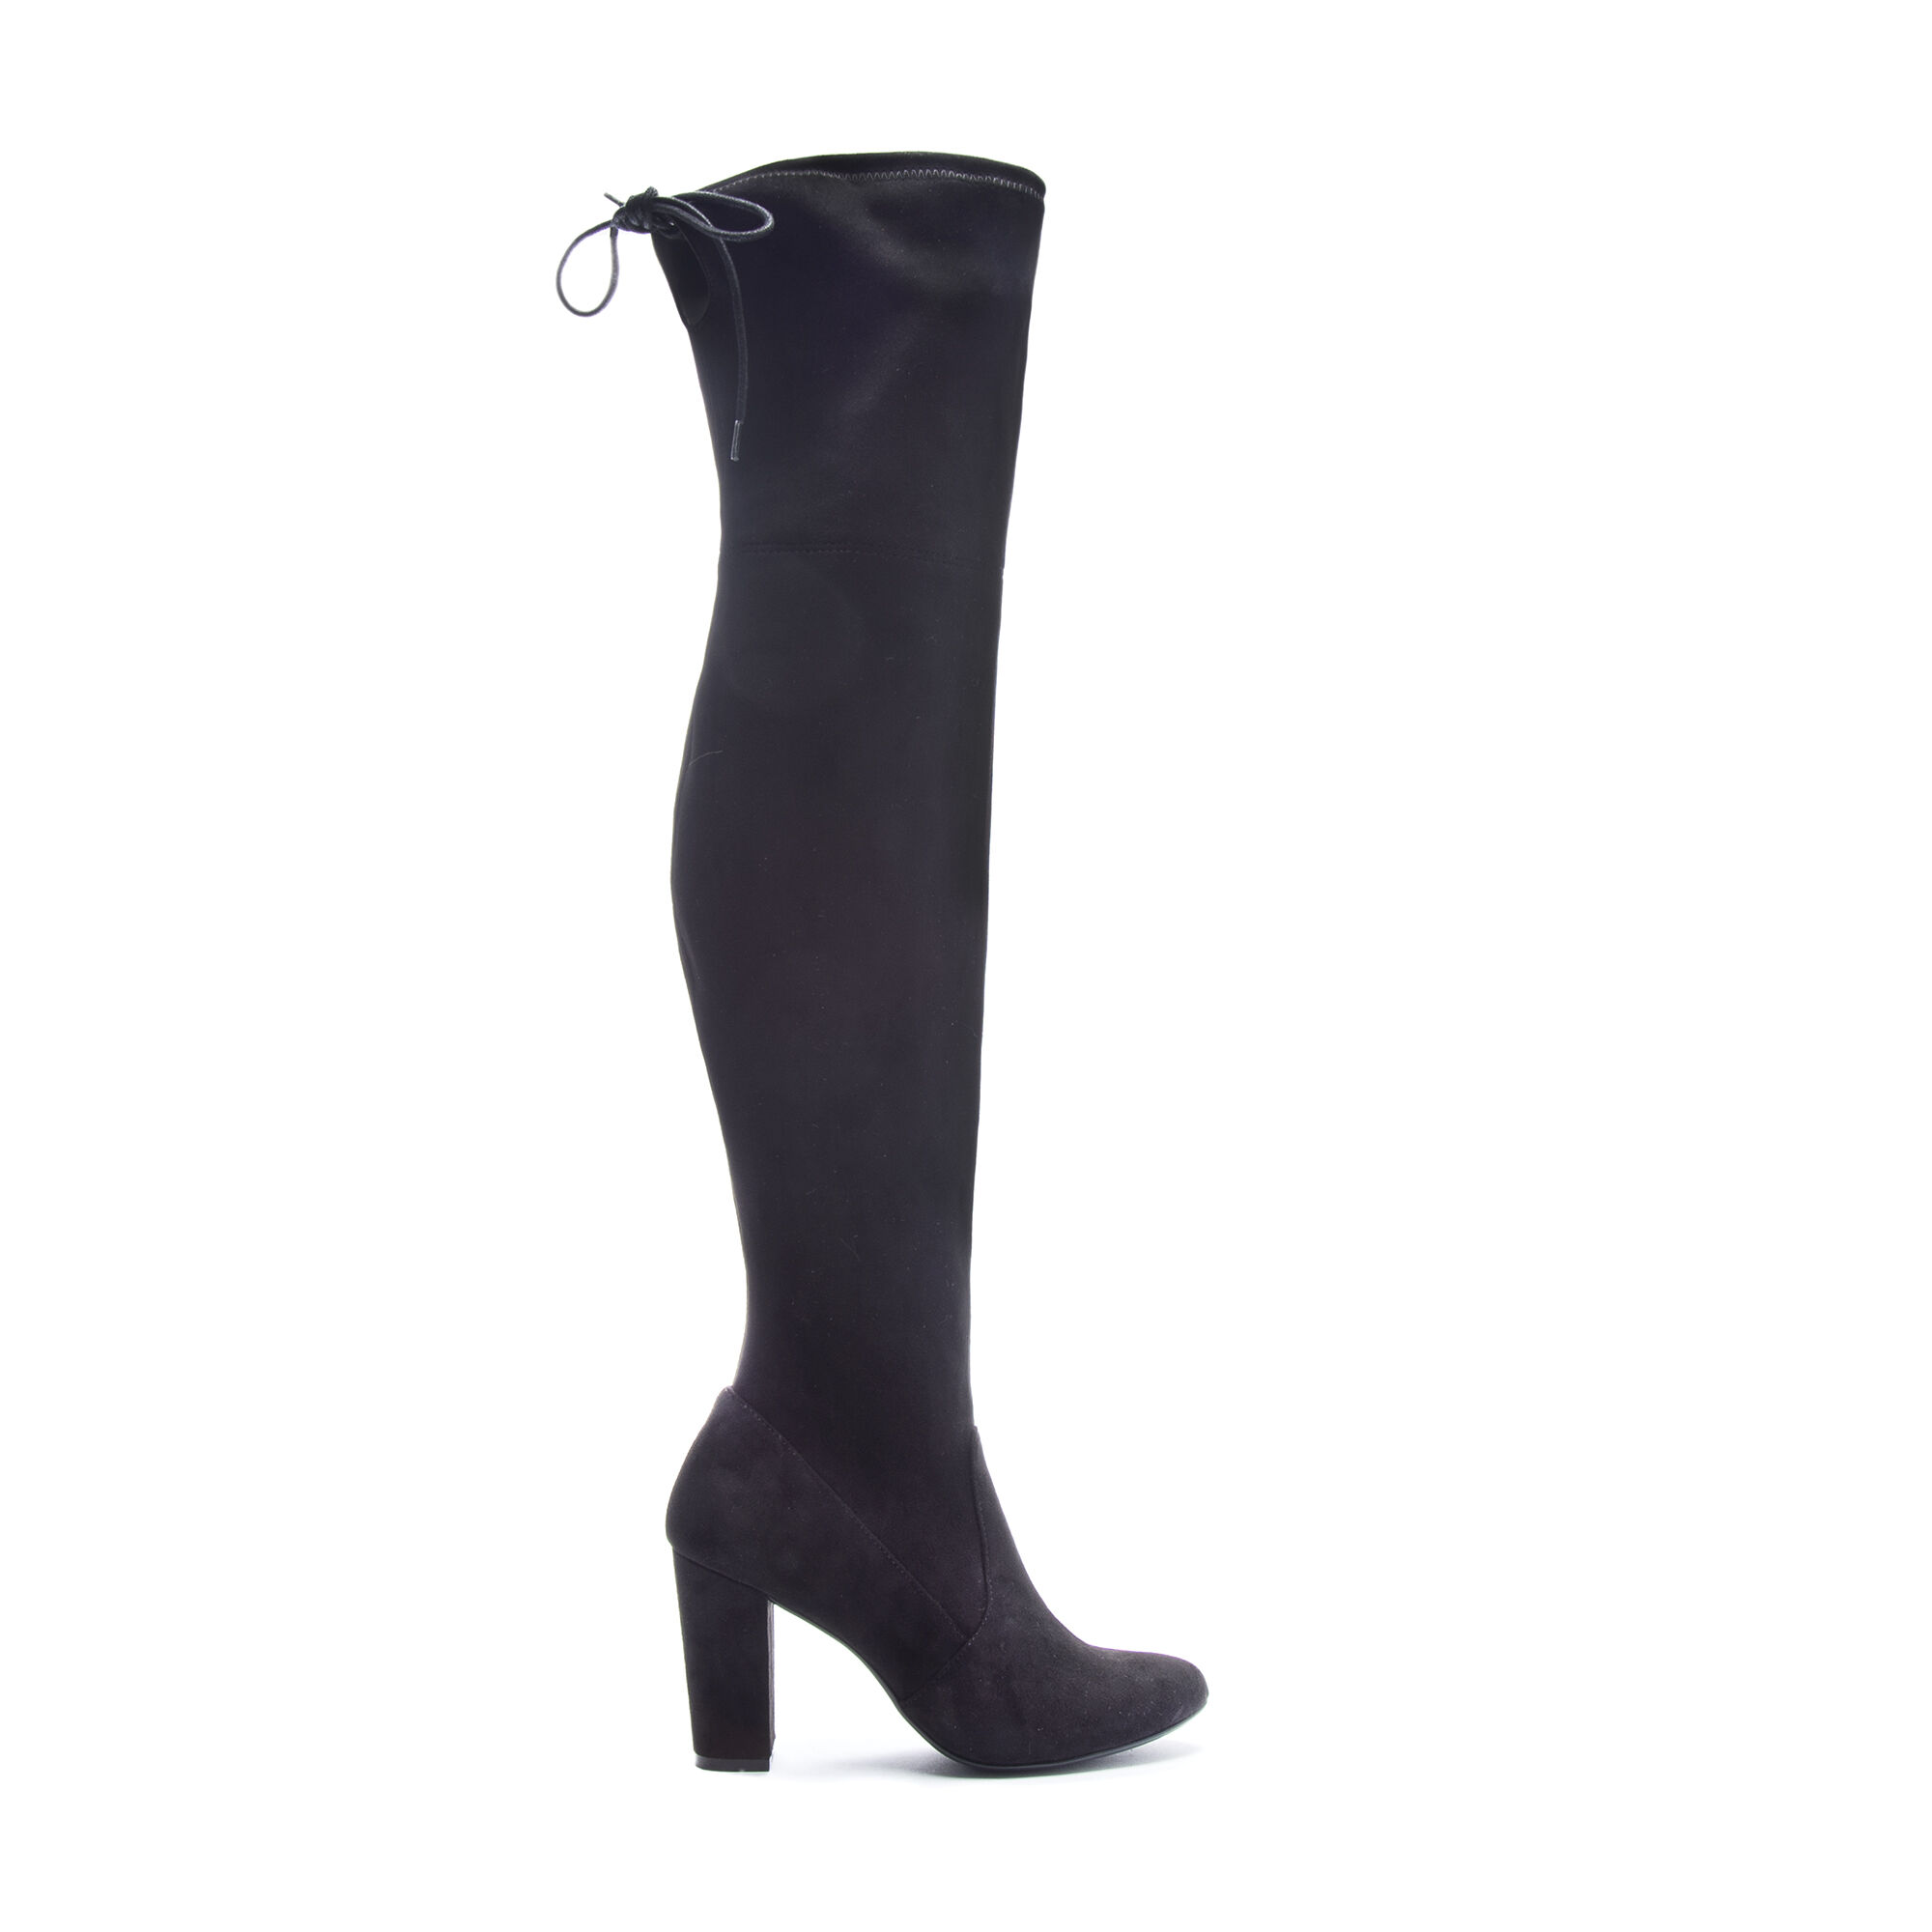 038eb1bf21e Brinna Faux Suede Over the Knee Boot Heels | Chinese Laundry